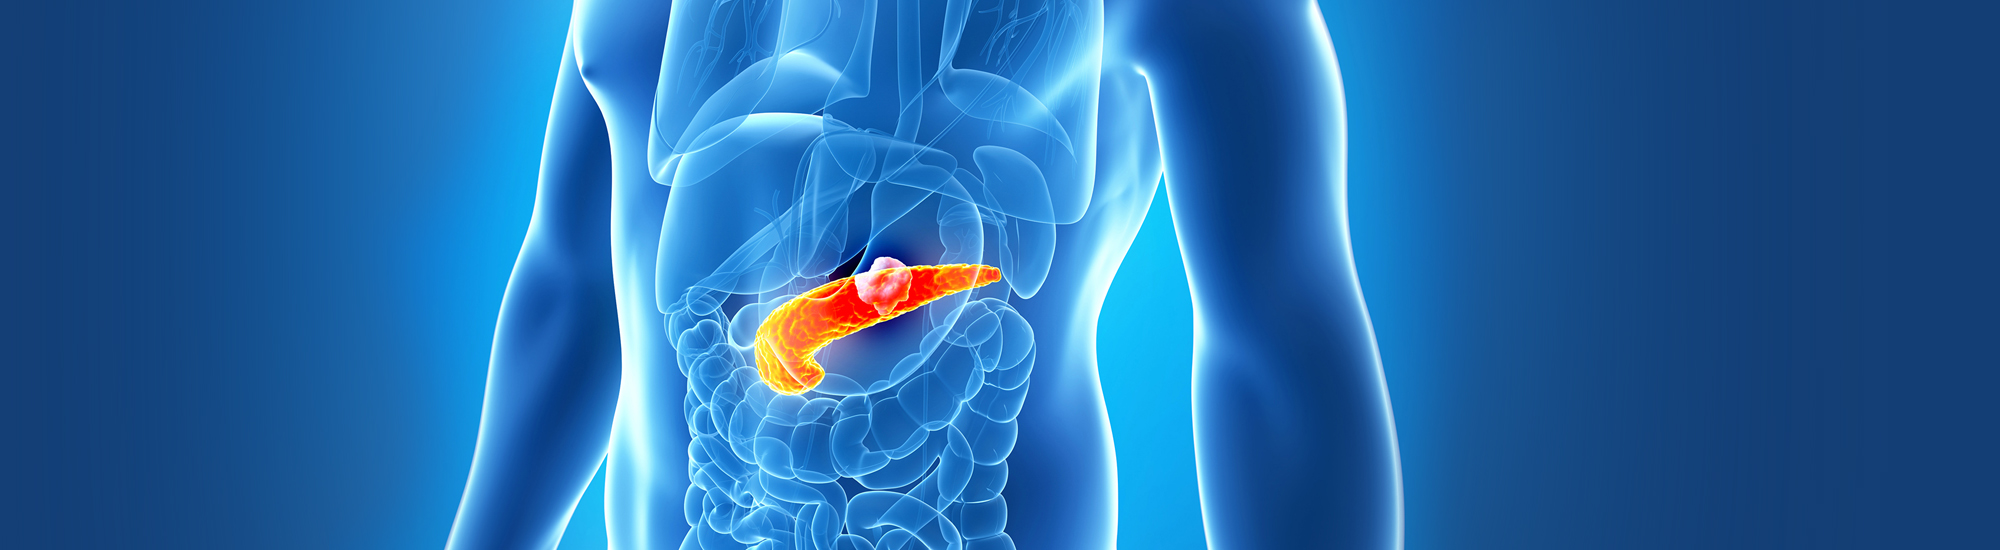 Ayurvedic treatment for Pancreatitis Causes